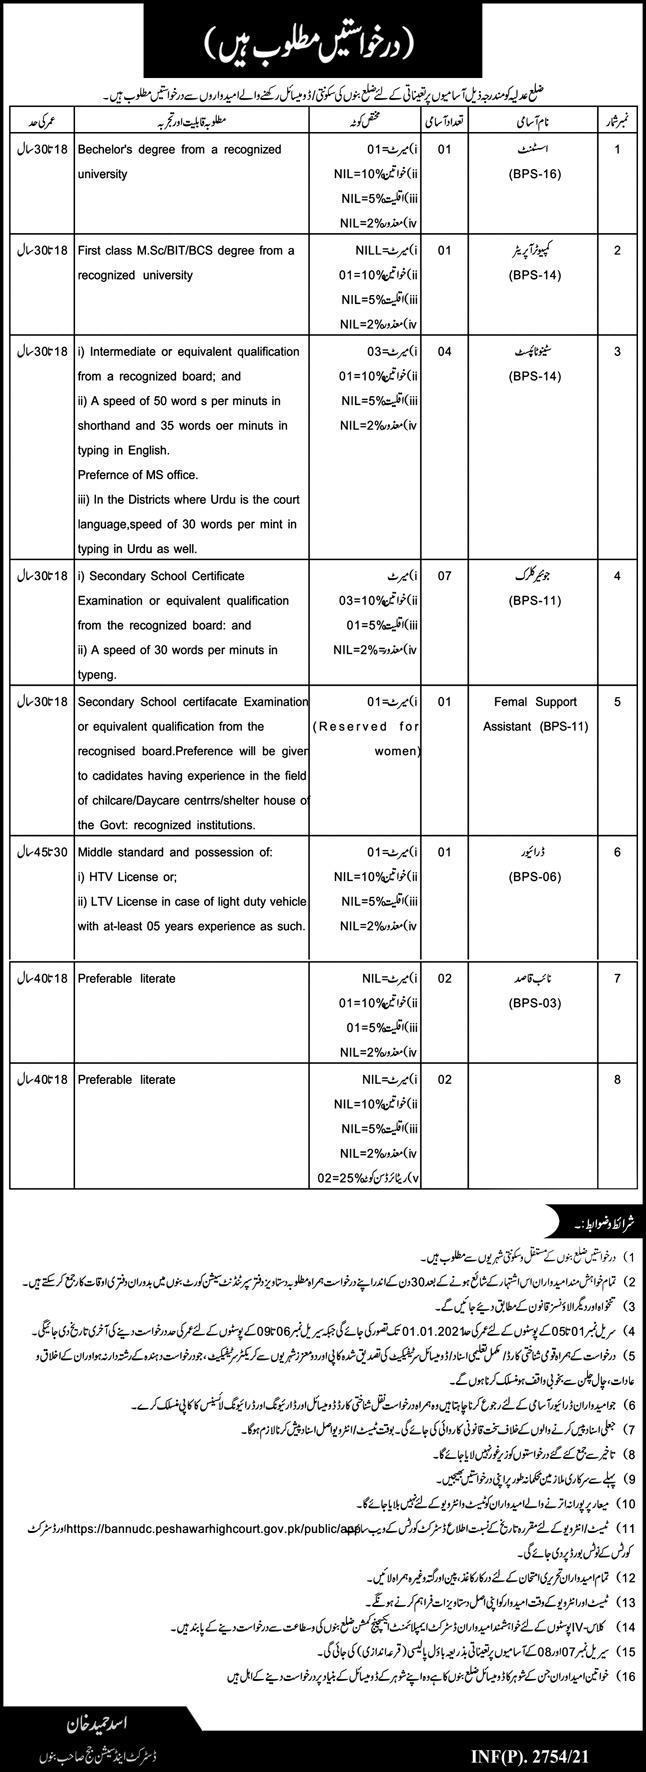 District & Session Judge District Courts Bannu Jobs 2021